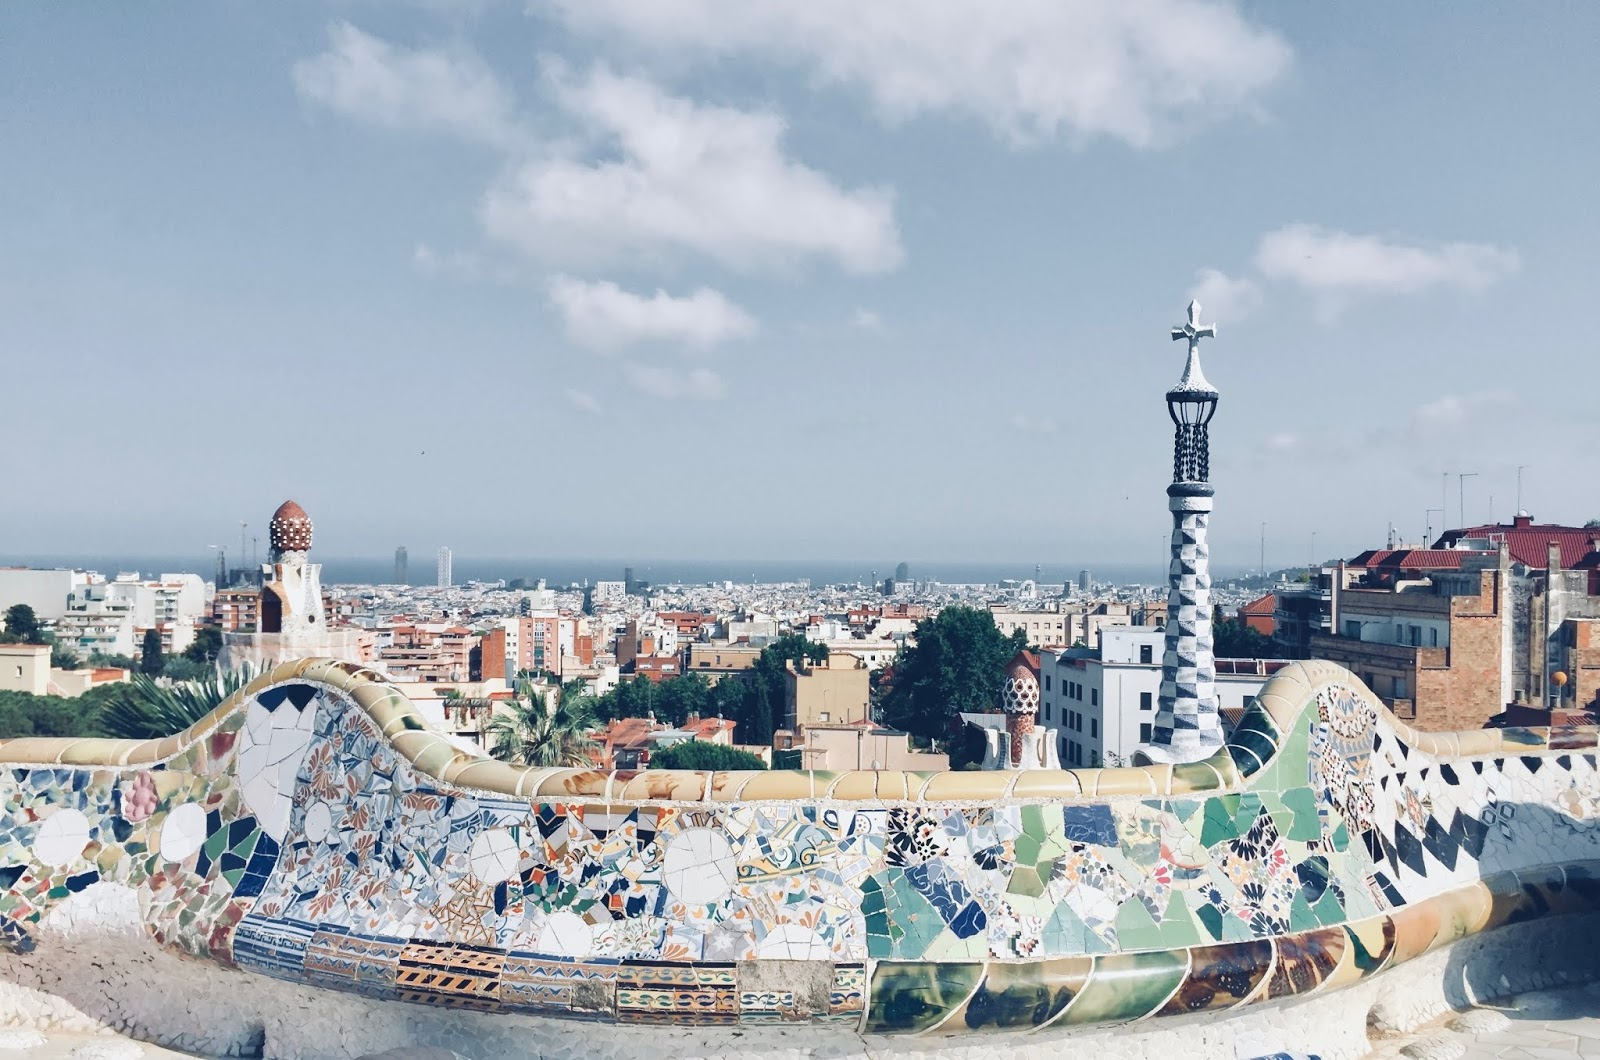 Why I want to visit Barcelona